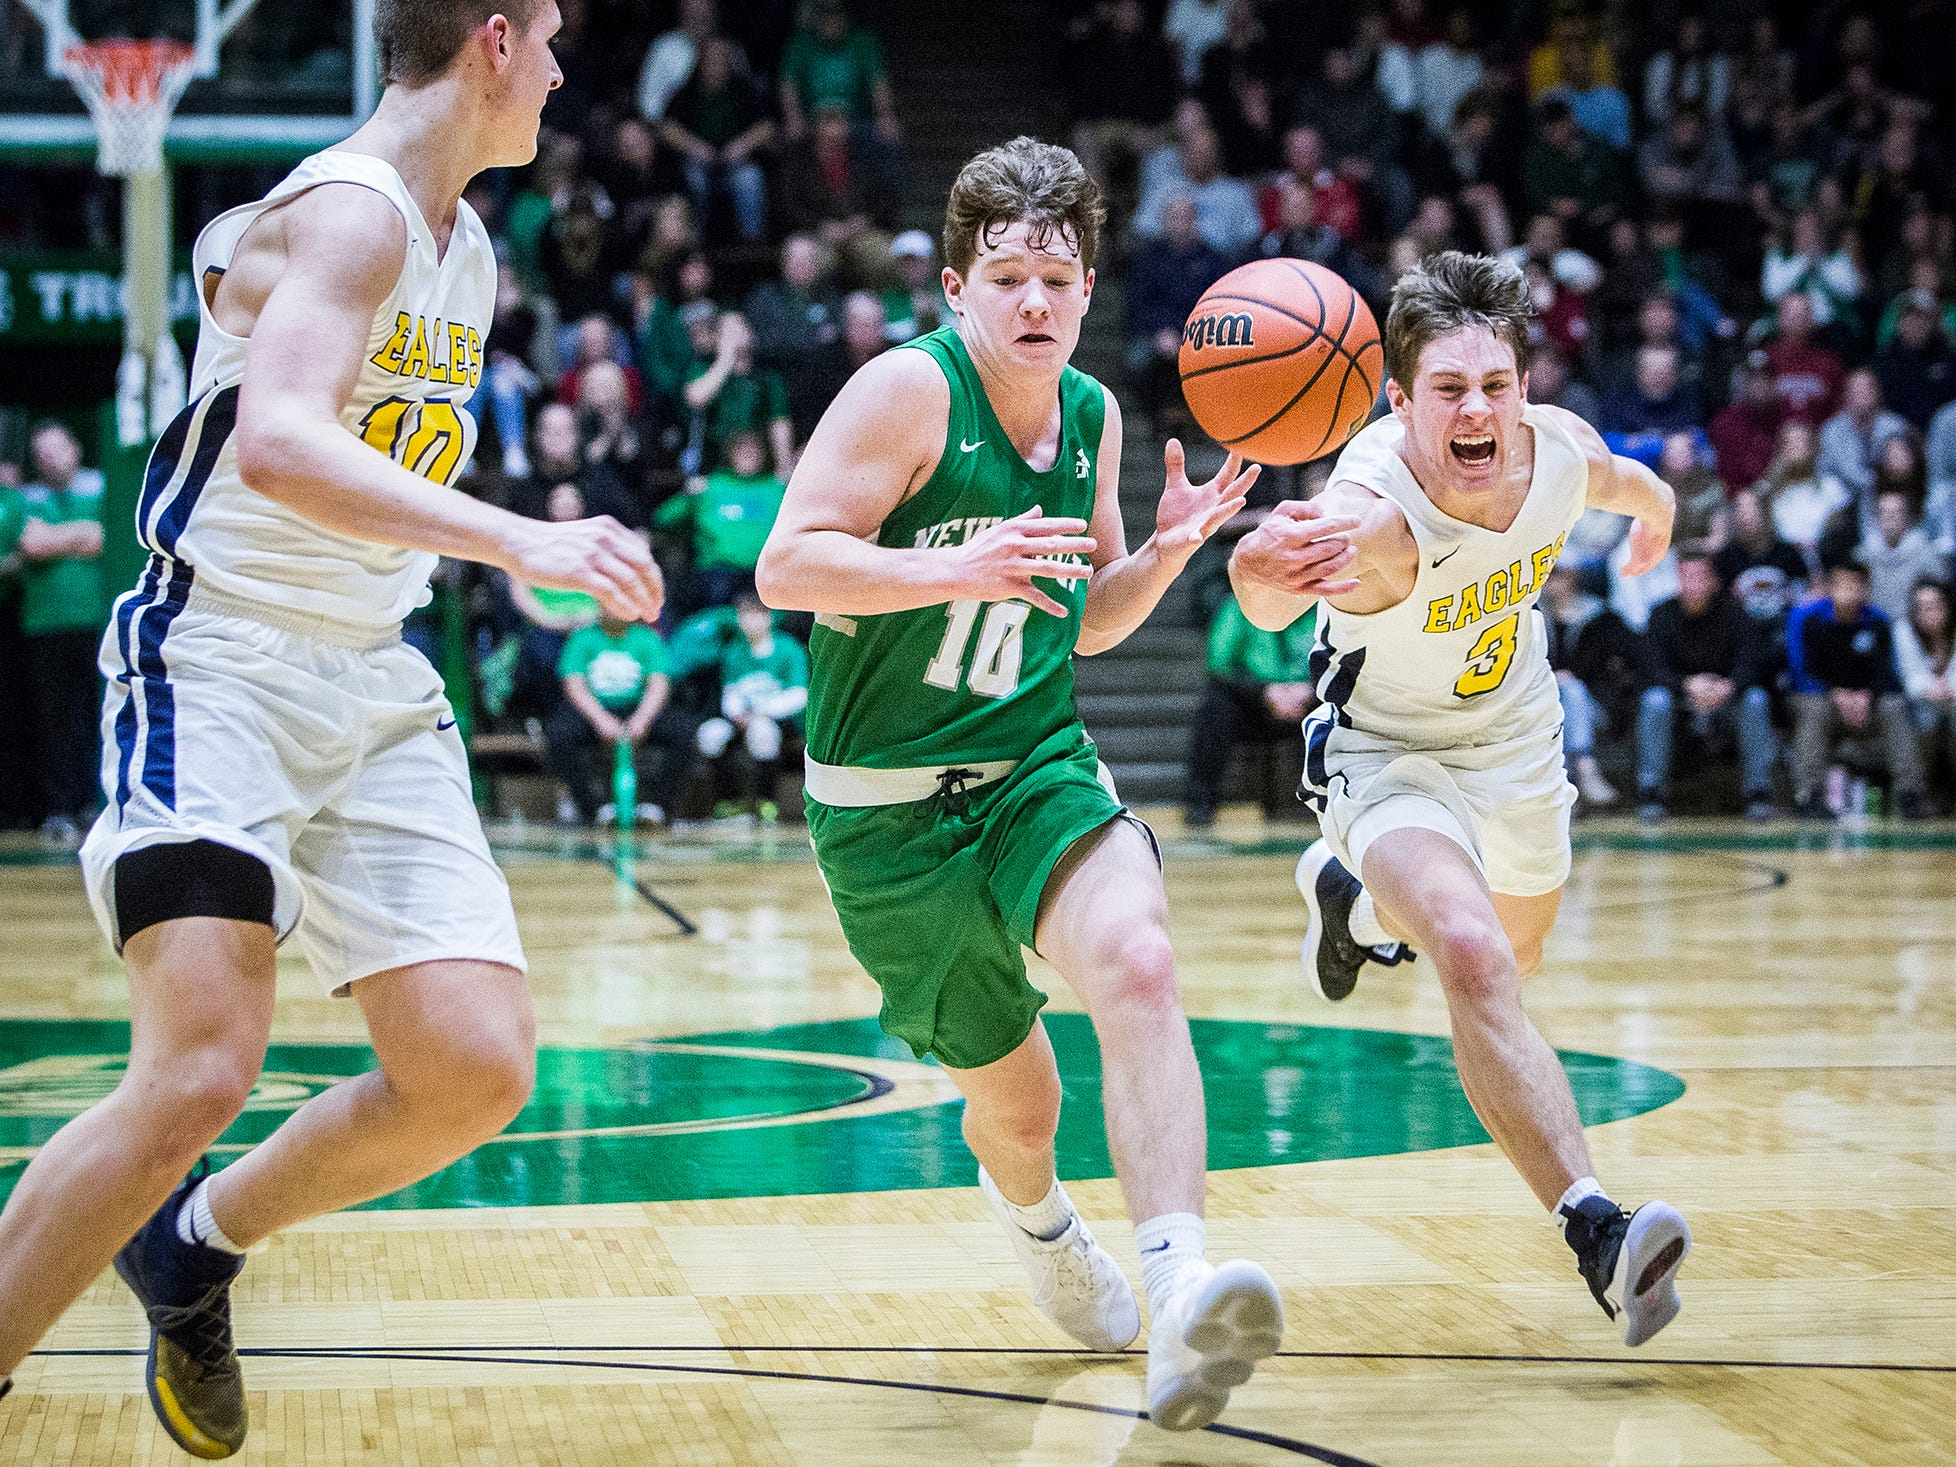 New Castle's Mason Hardwick drives against Delta's Zach Garner, right, and Tyler Wilburn during their sectional championship game at New Castle High School Saturday, March 2, 2019.